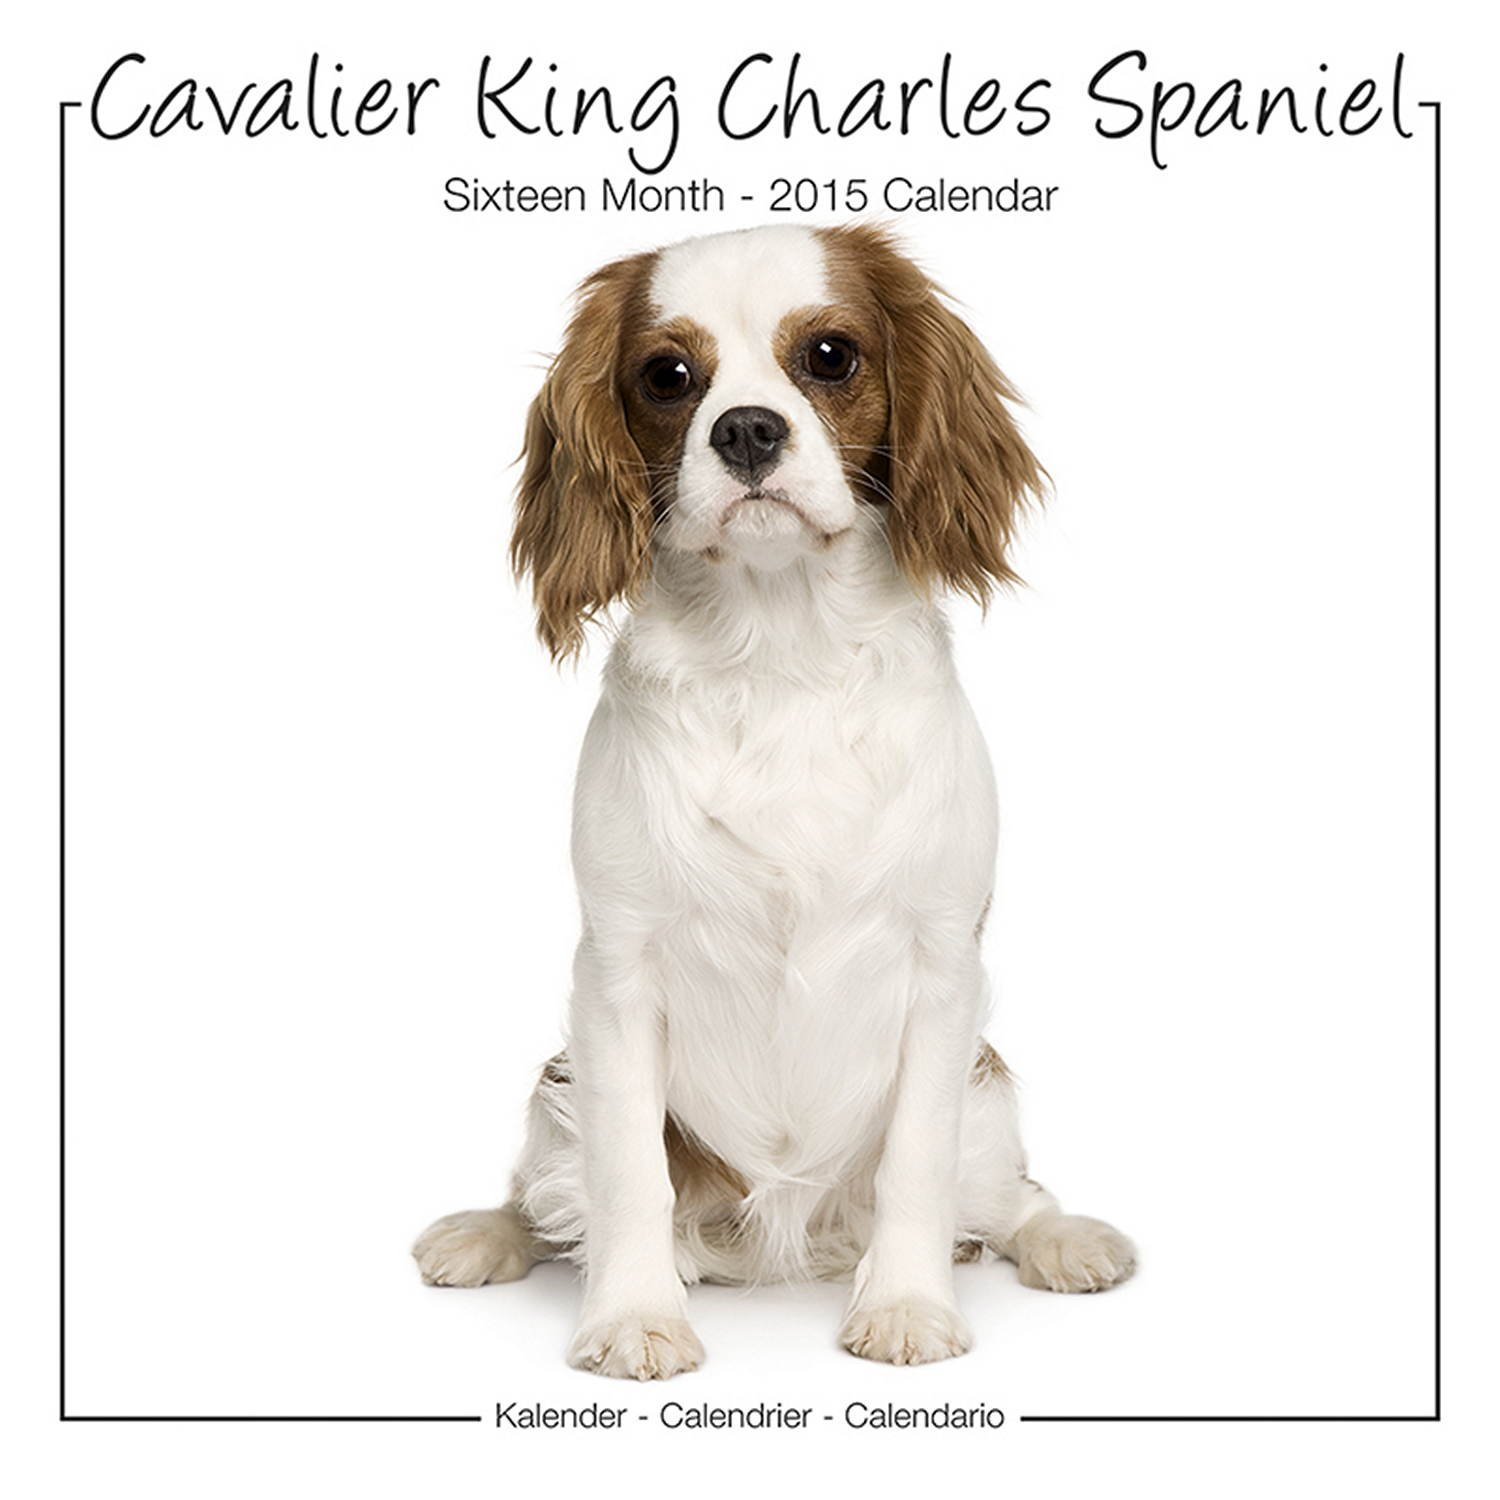 Cavalier king charles spaniel calendar dog breed calendars 2018 cavalier king charles spaniel calendar dog breed calendars 2018 dog calendar calendars 2017 2018 wall calendars 16 month wall calendar by avonside nvjuhfo Image collections